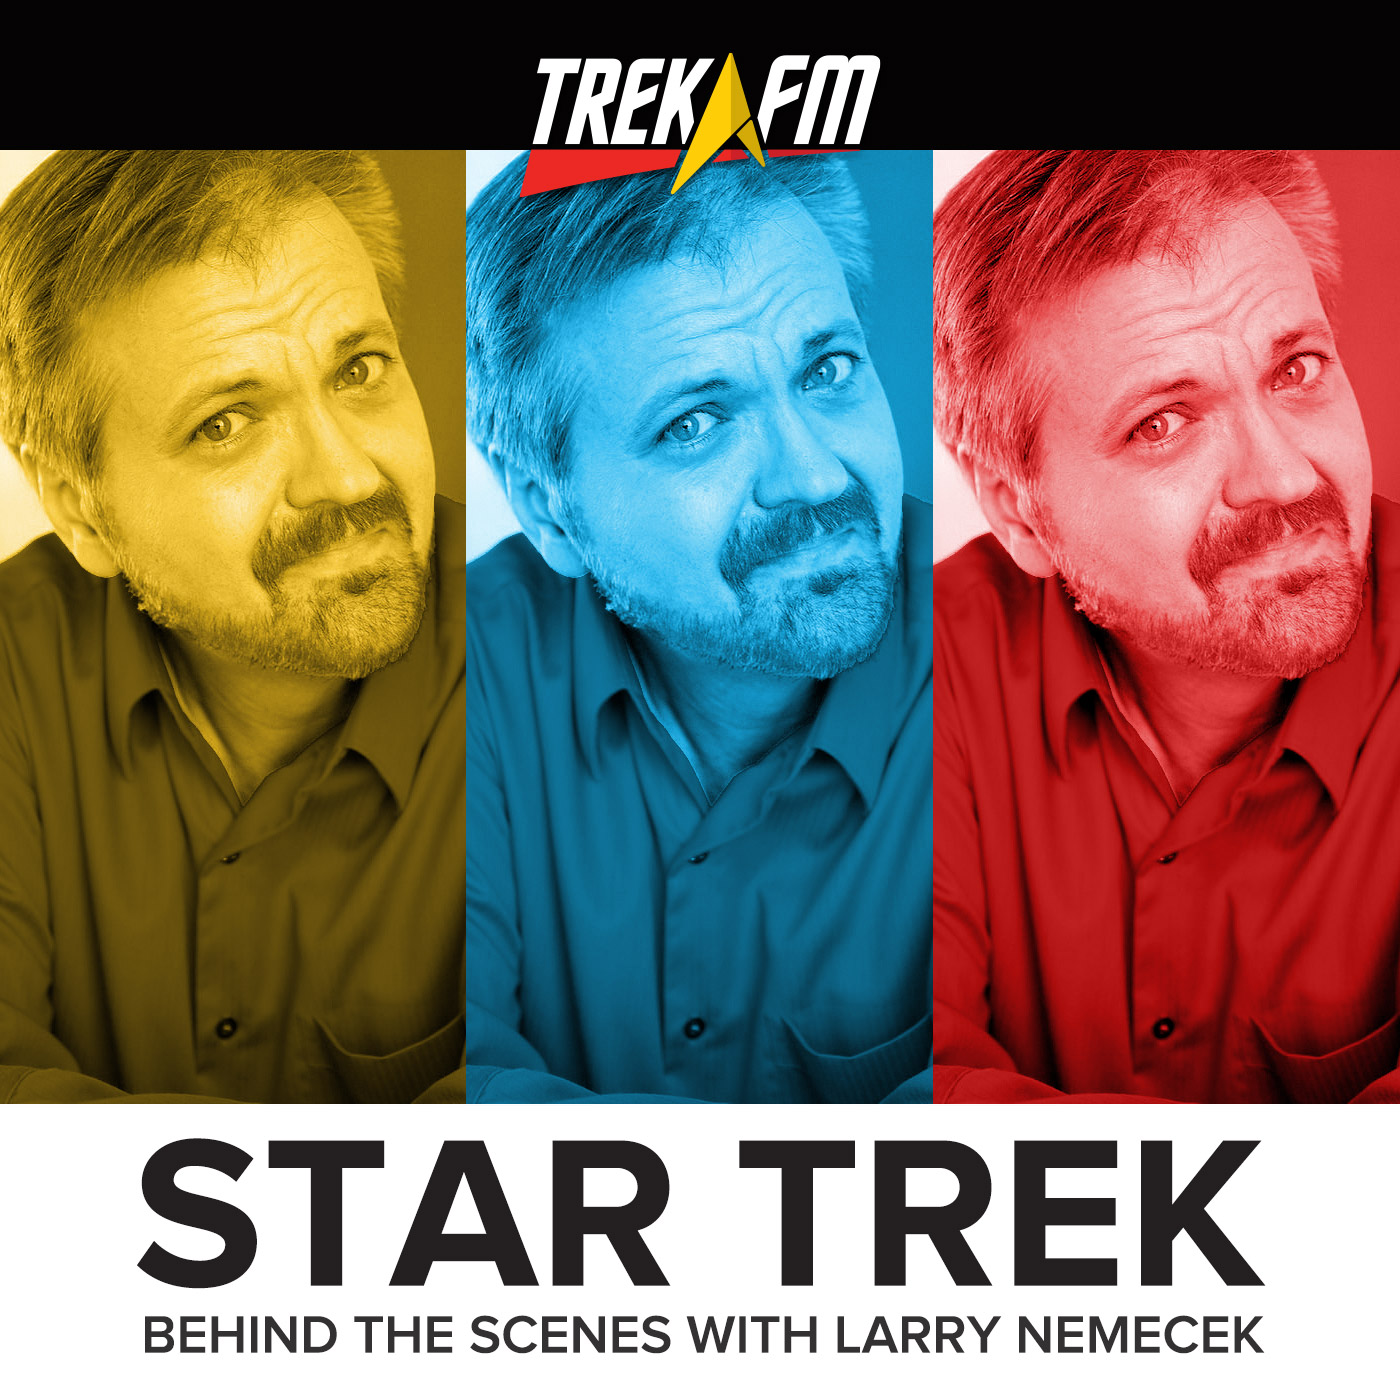 Star Trek Behind the Scenes with Larry Nemecek: A Trek.fm Podcasts Collection